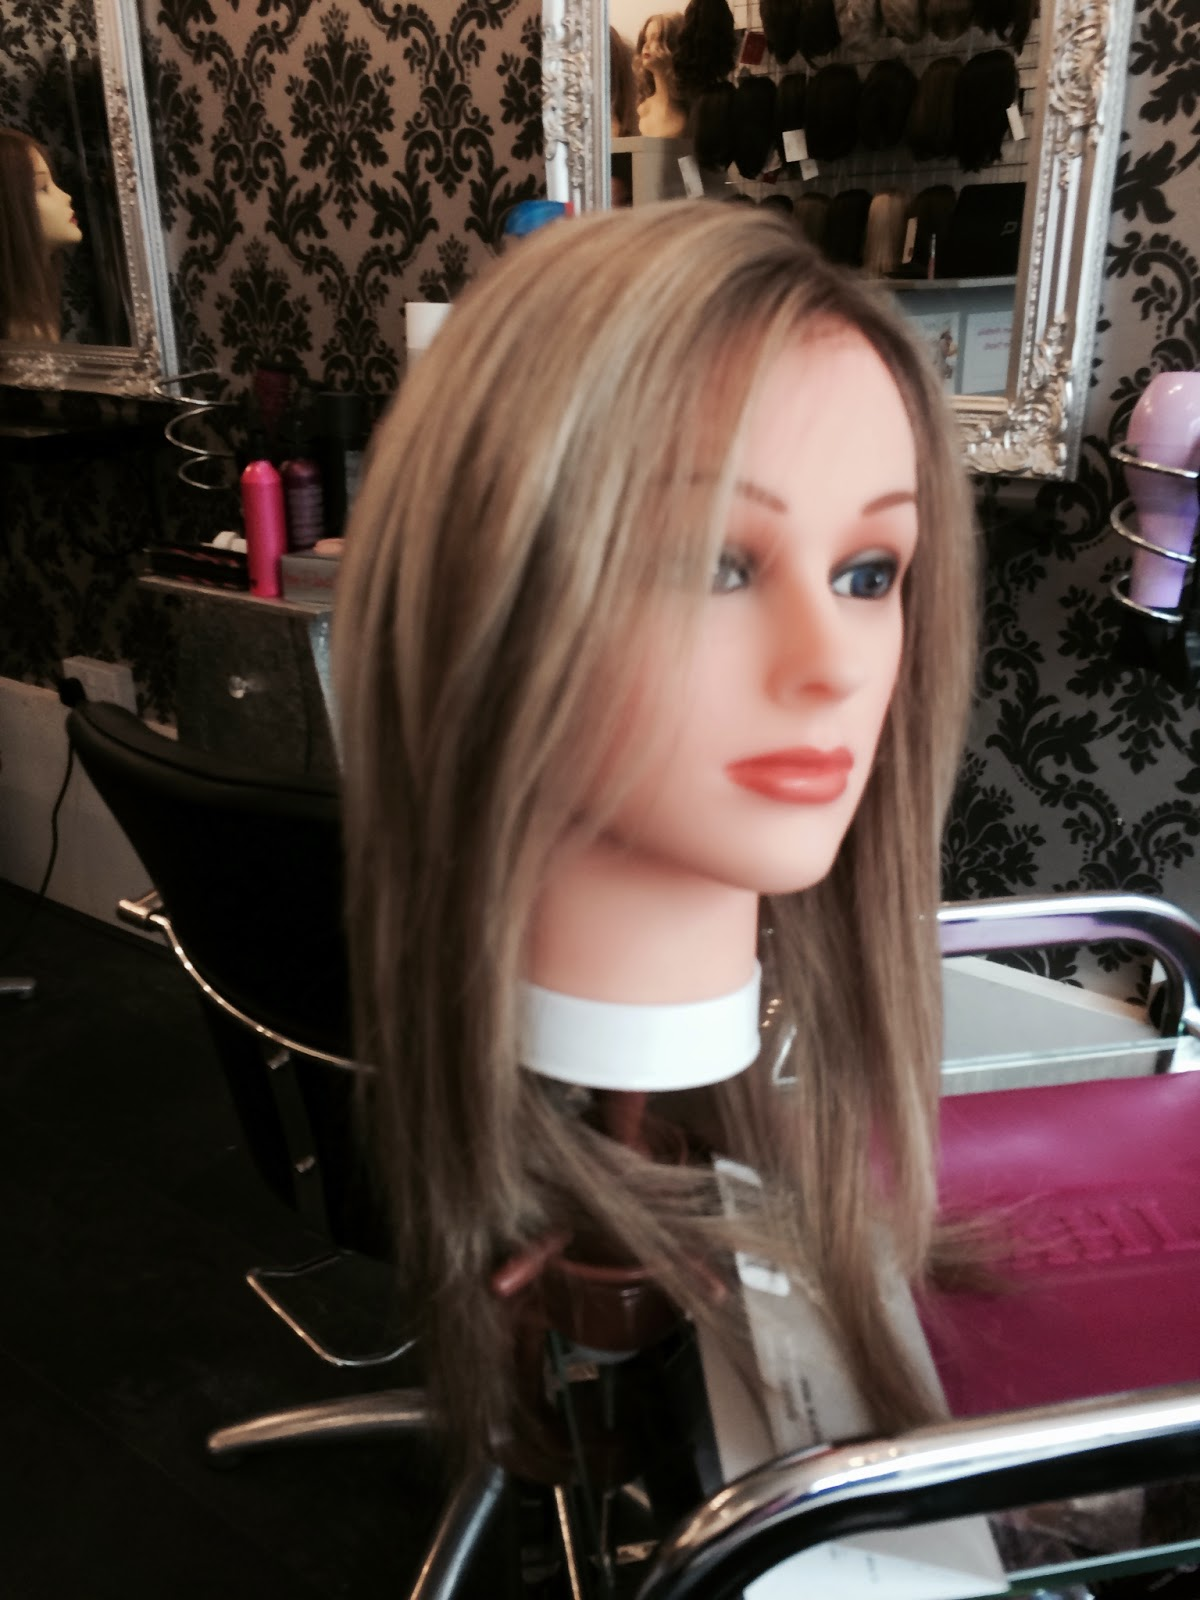 http://www.aspire-hair.co.uk/ourshop/prod_1247914-Kate-Human-Hair-SmartLace-Wig.html